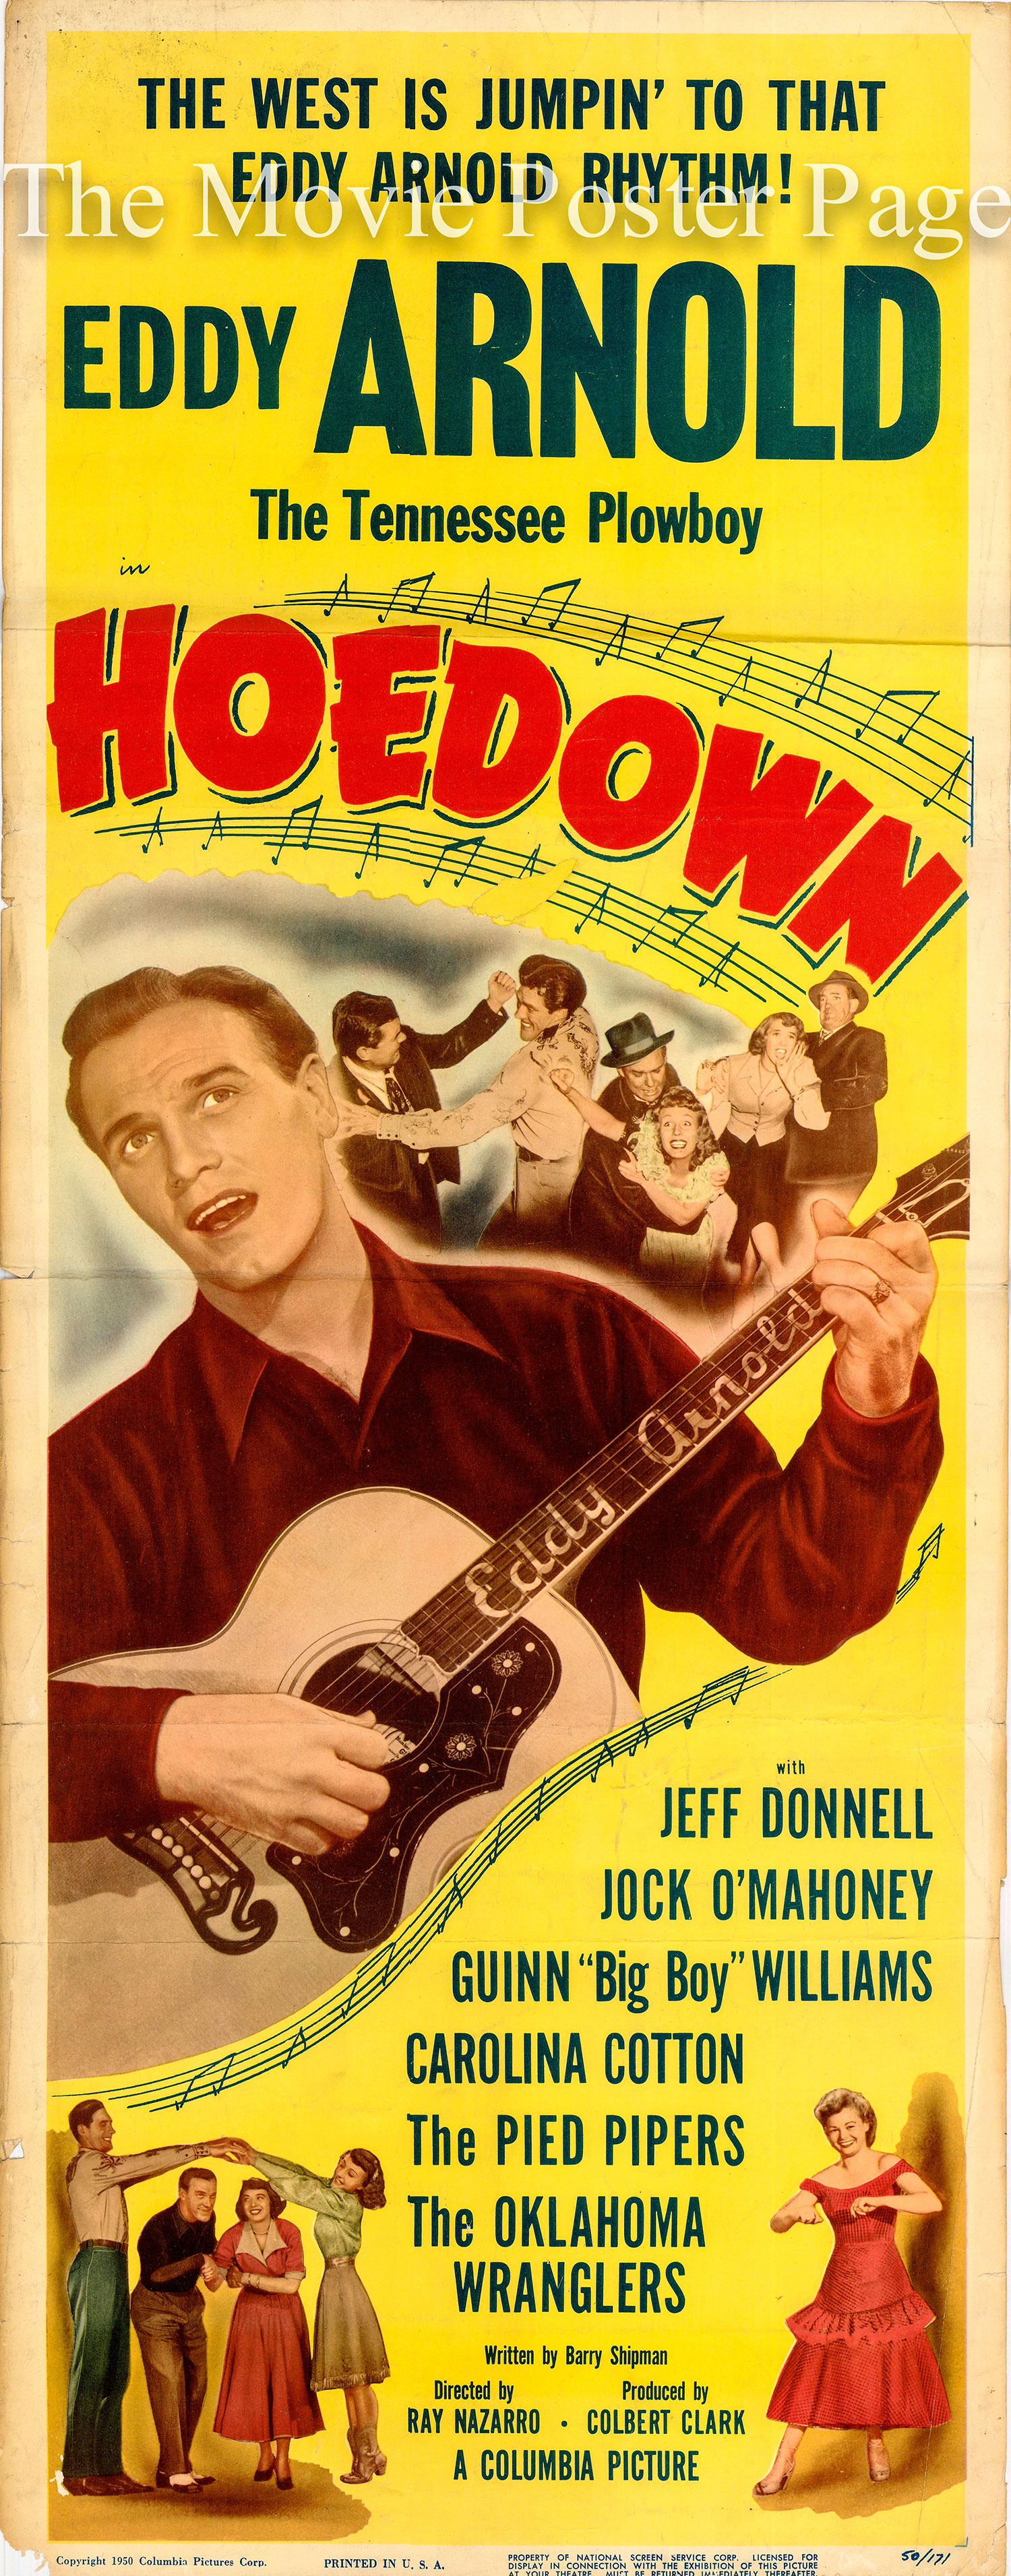 Pictured is a US one-sheet promotional poster for the 1950 Ray Nazarro film Hoedown starring Eddy Arnold.